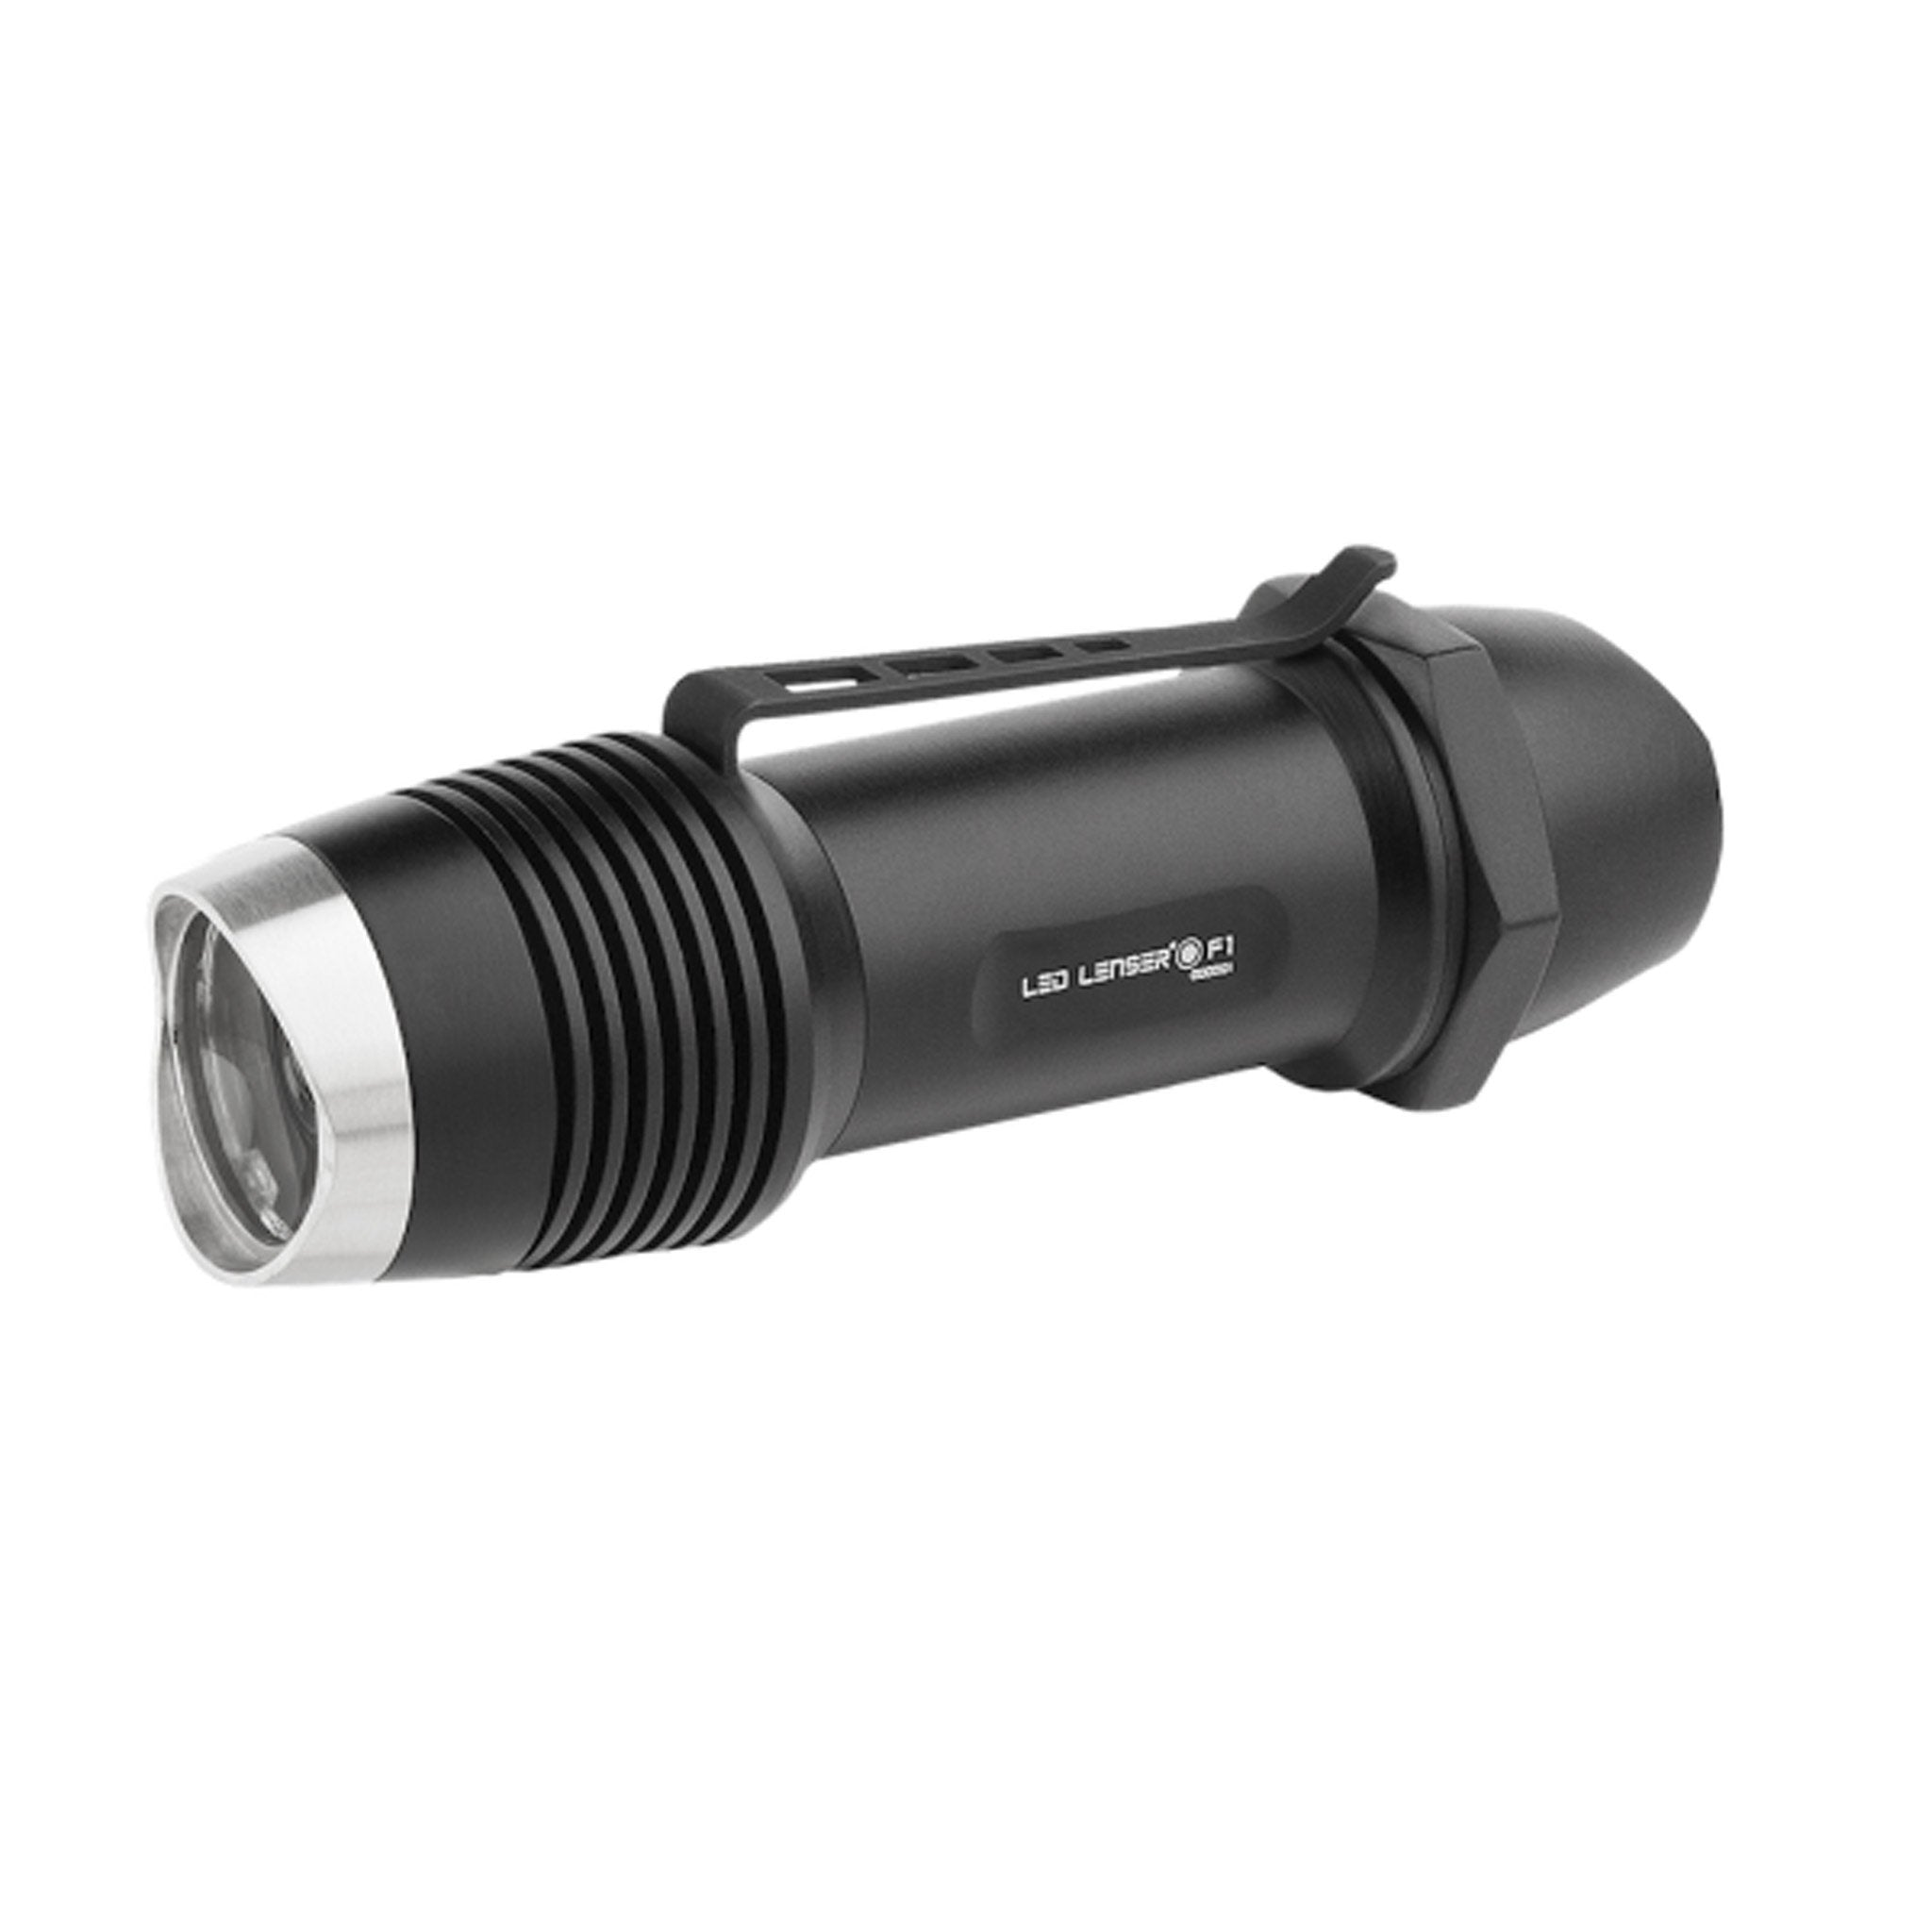 LED Lenser F1 Torch - Arthur Beale